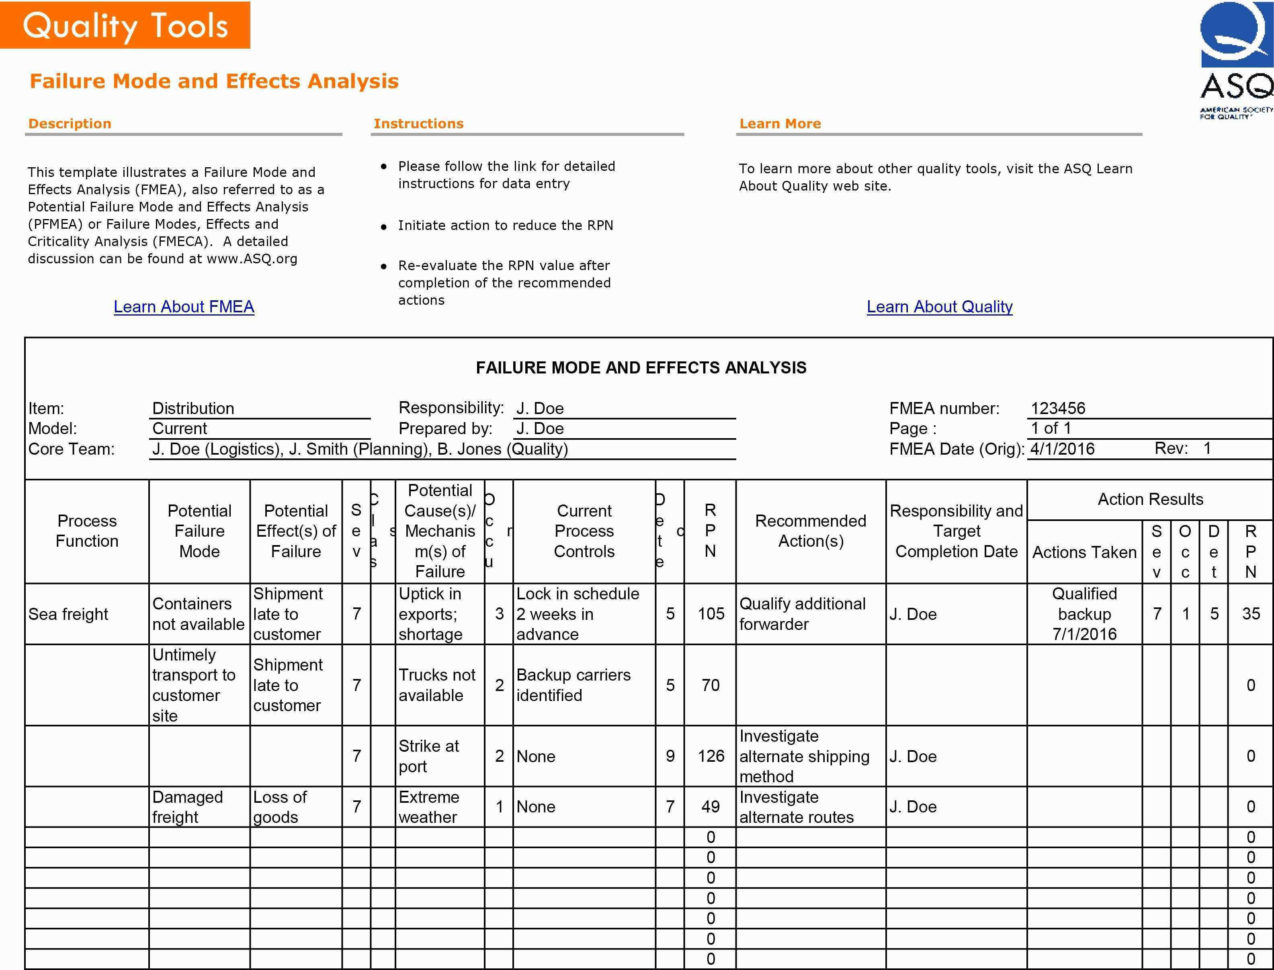 Fmea Spreadsheet Within Real Estate Investment Analysis Spreadsheet For Fmea Template Excel